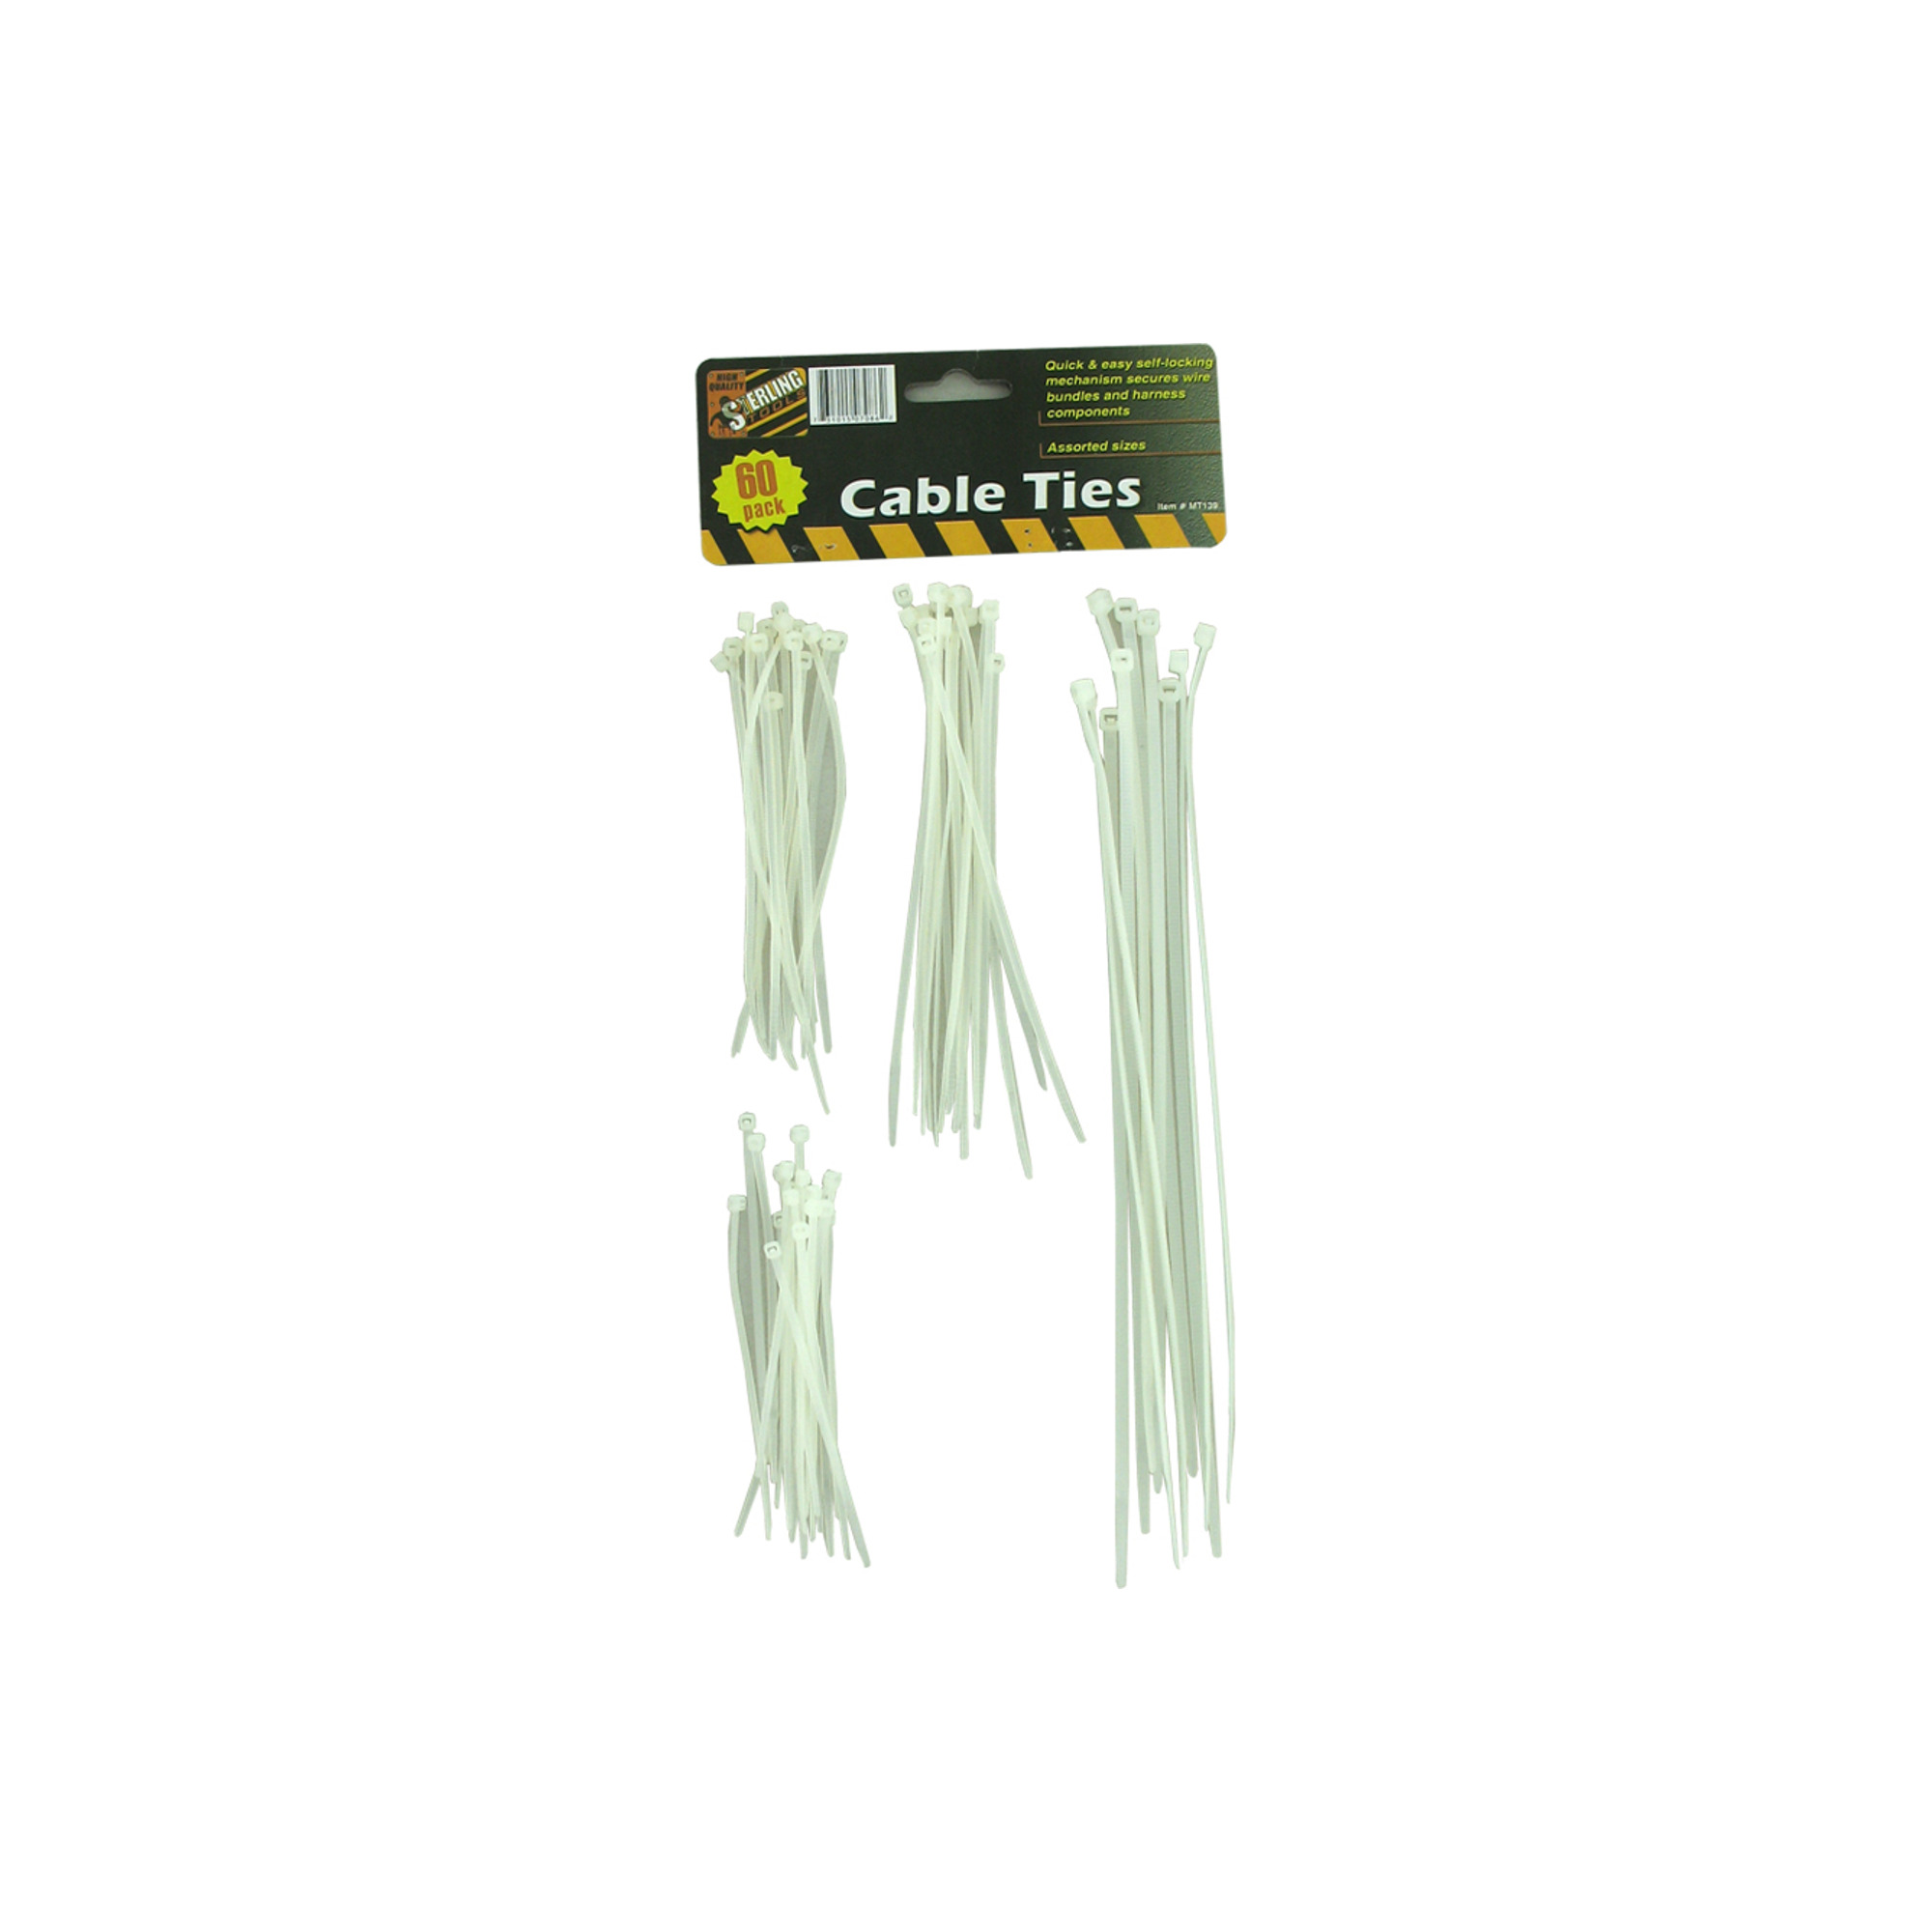 Wholesale Cable Management Freight And Tool Wiring Harness Zip Ties Multi Purpose